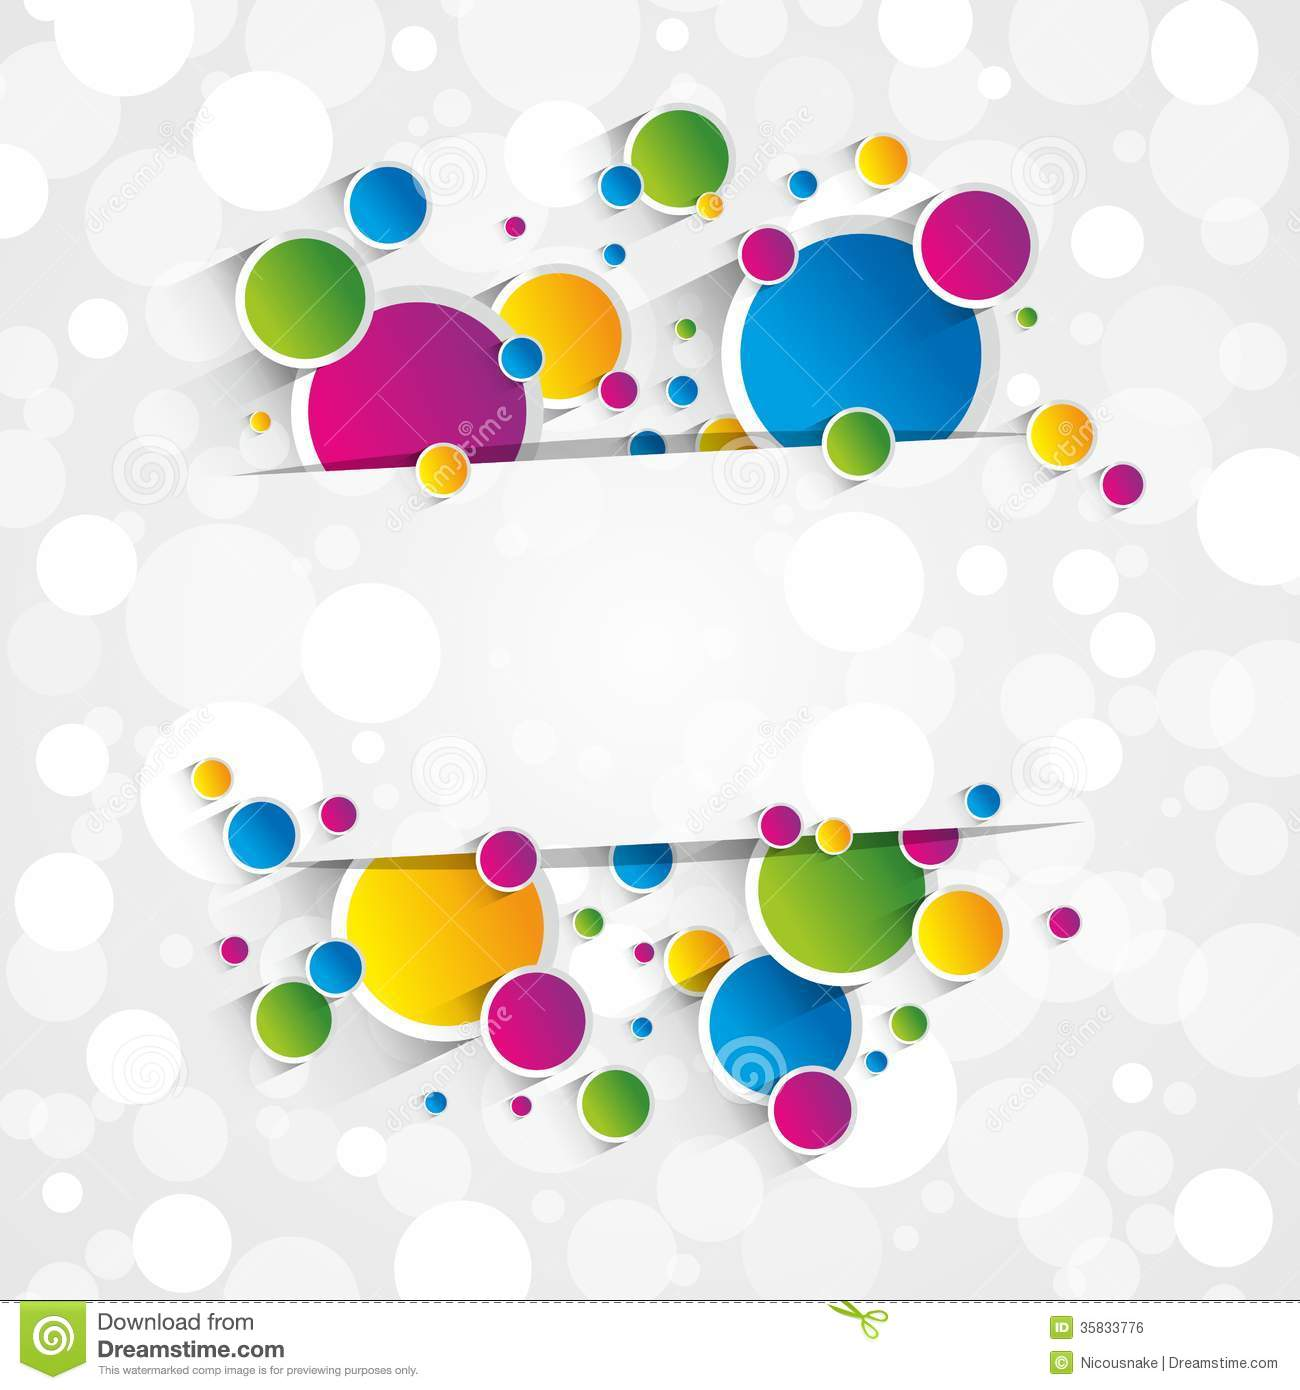 Creative Colorful Circles Background Royalty Free Stock